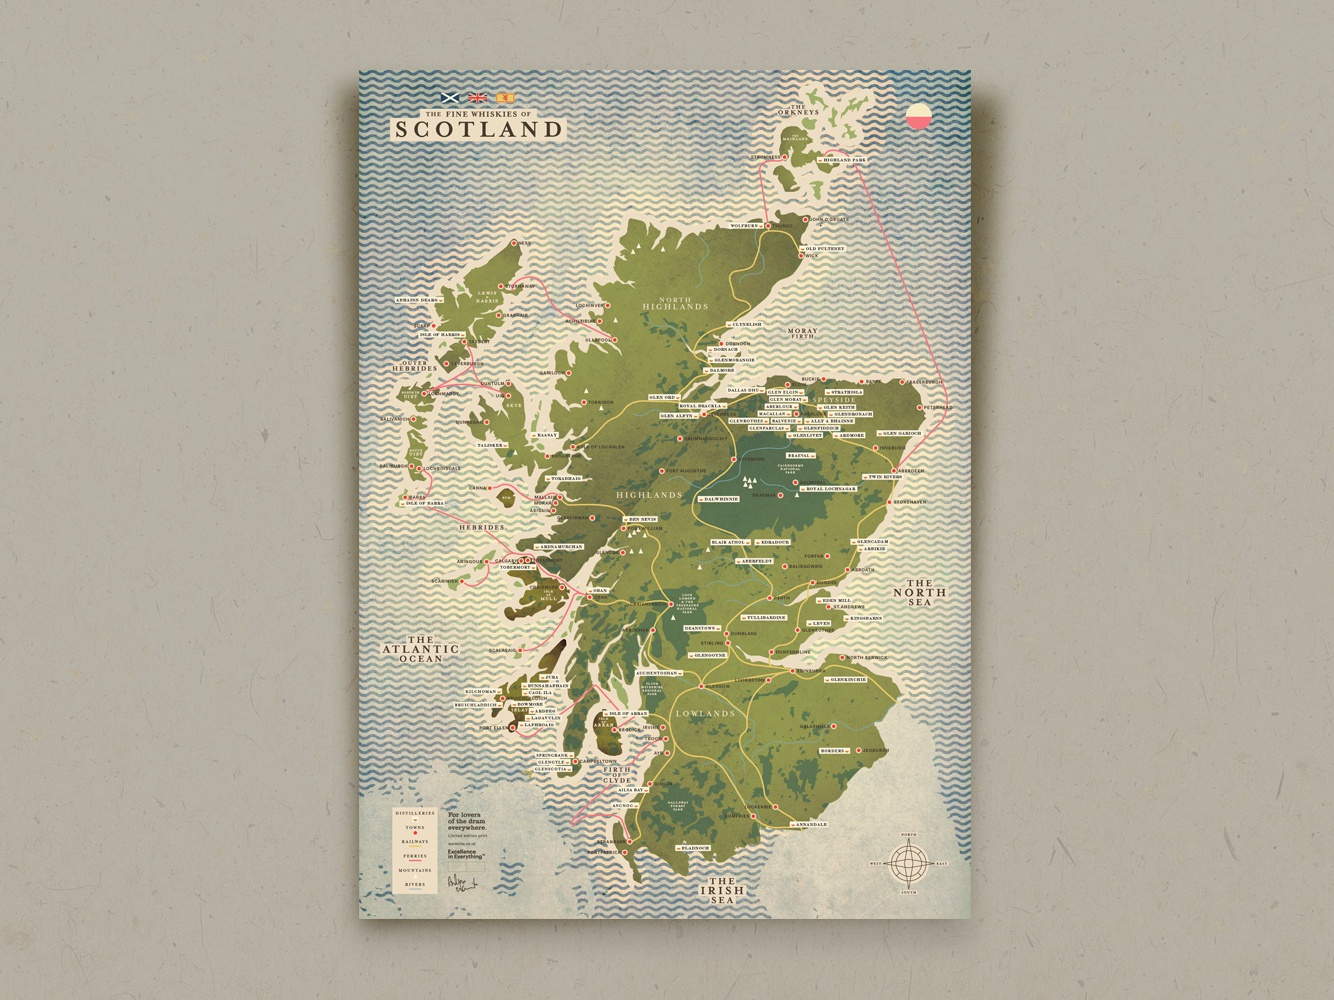 The fine whiskies of Scotland maps cartography map illustration